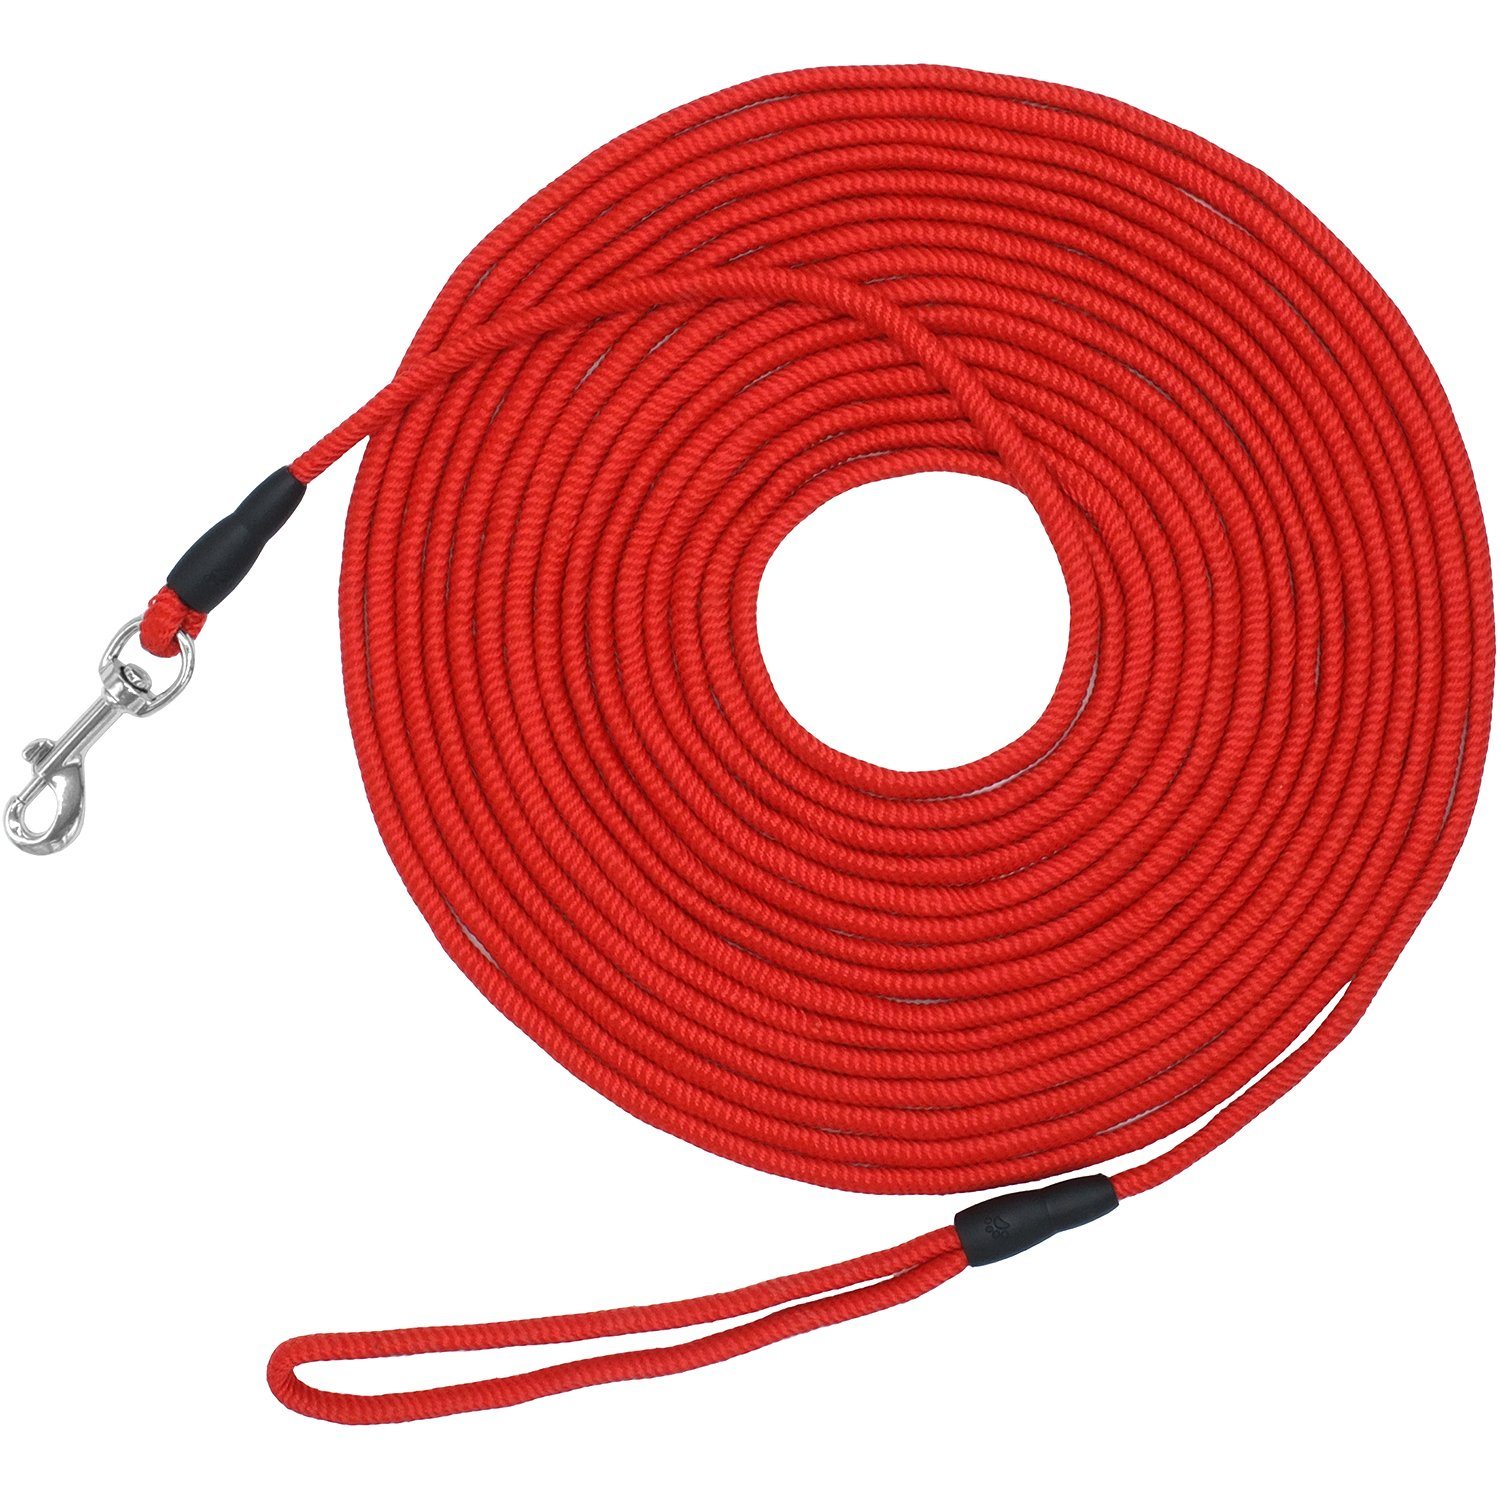 Vcalabashor Long Dog Puppy Obedience Recall Training Agility Rope Leash/Small Dog Check Cord/Young Dog Tracking Leads/Highly Visible and Floats/Red - 30ft